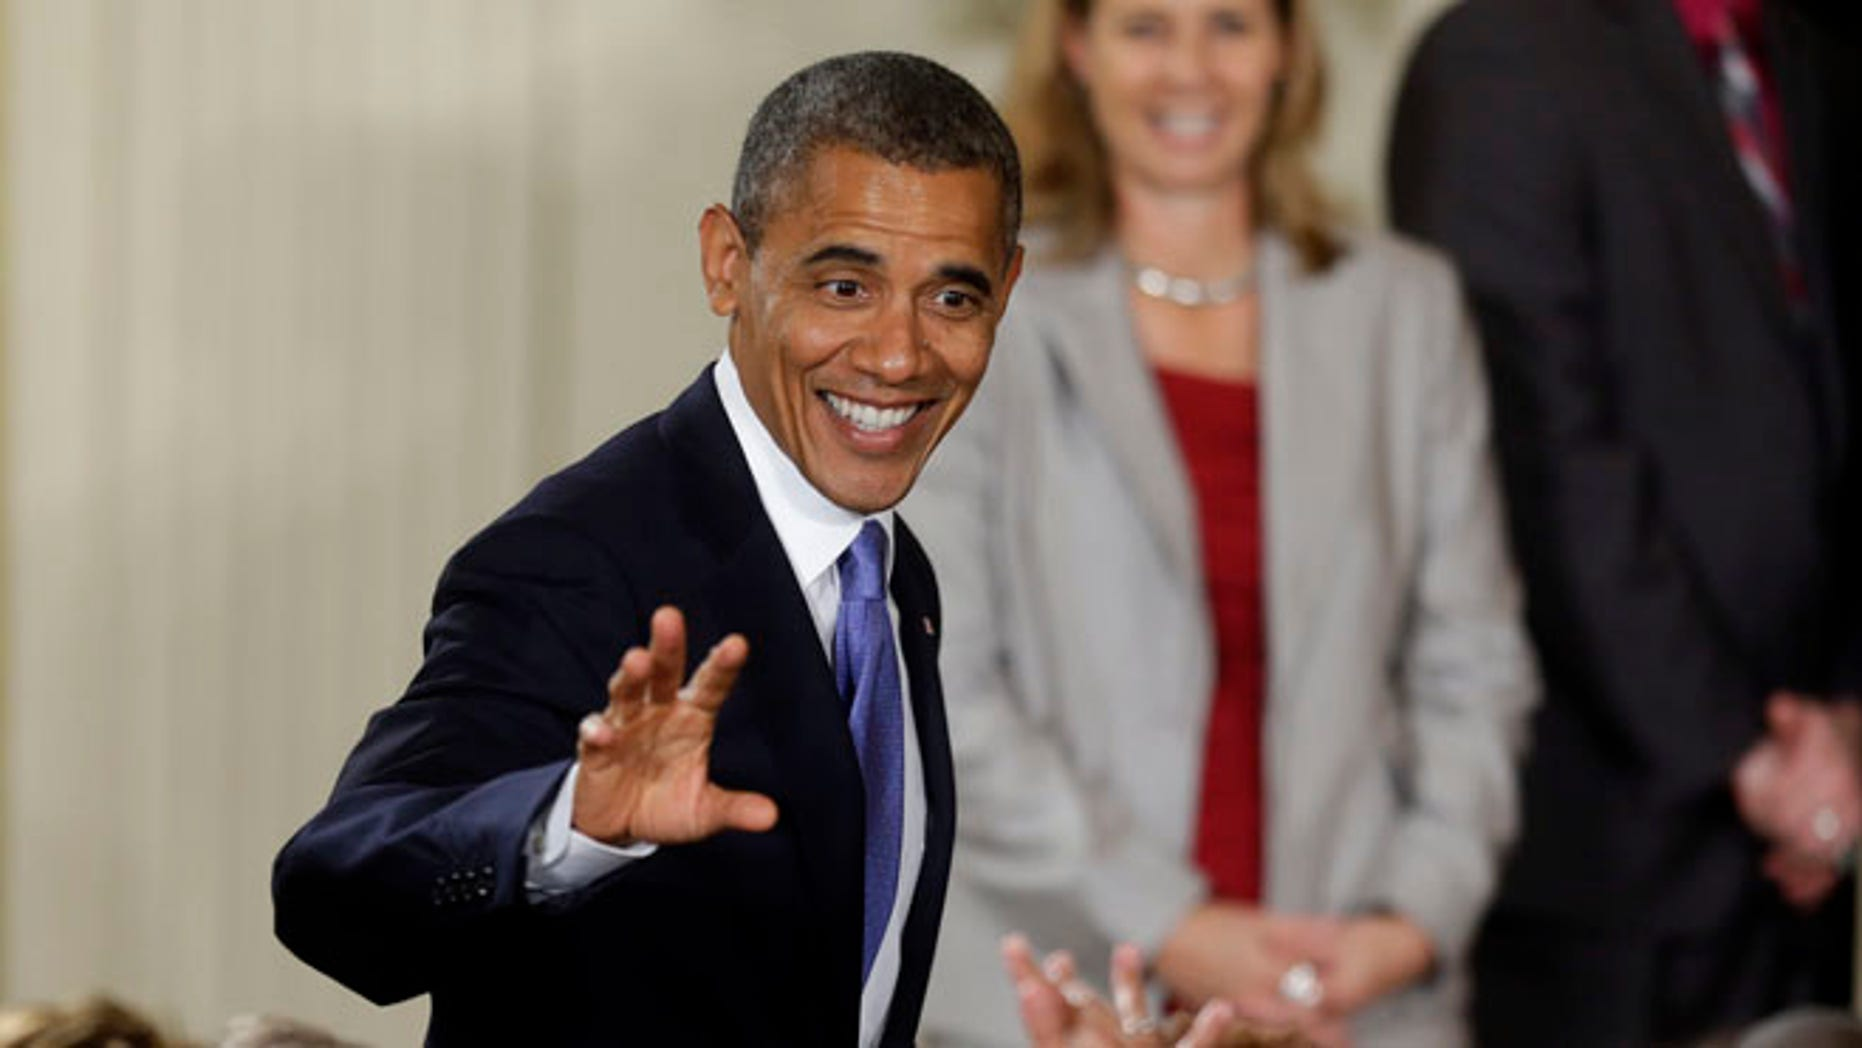 Sept. 18, 2012: President Obama waves to members of the audience during a ceremony honoring the WNBA Champion Minnesota Lynx at the White House.